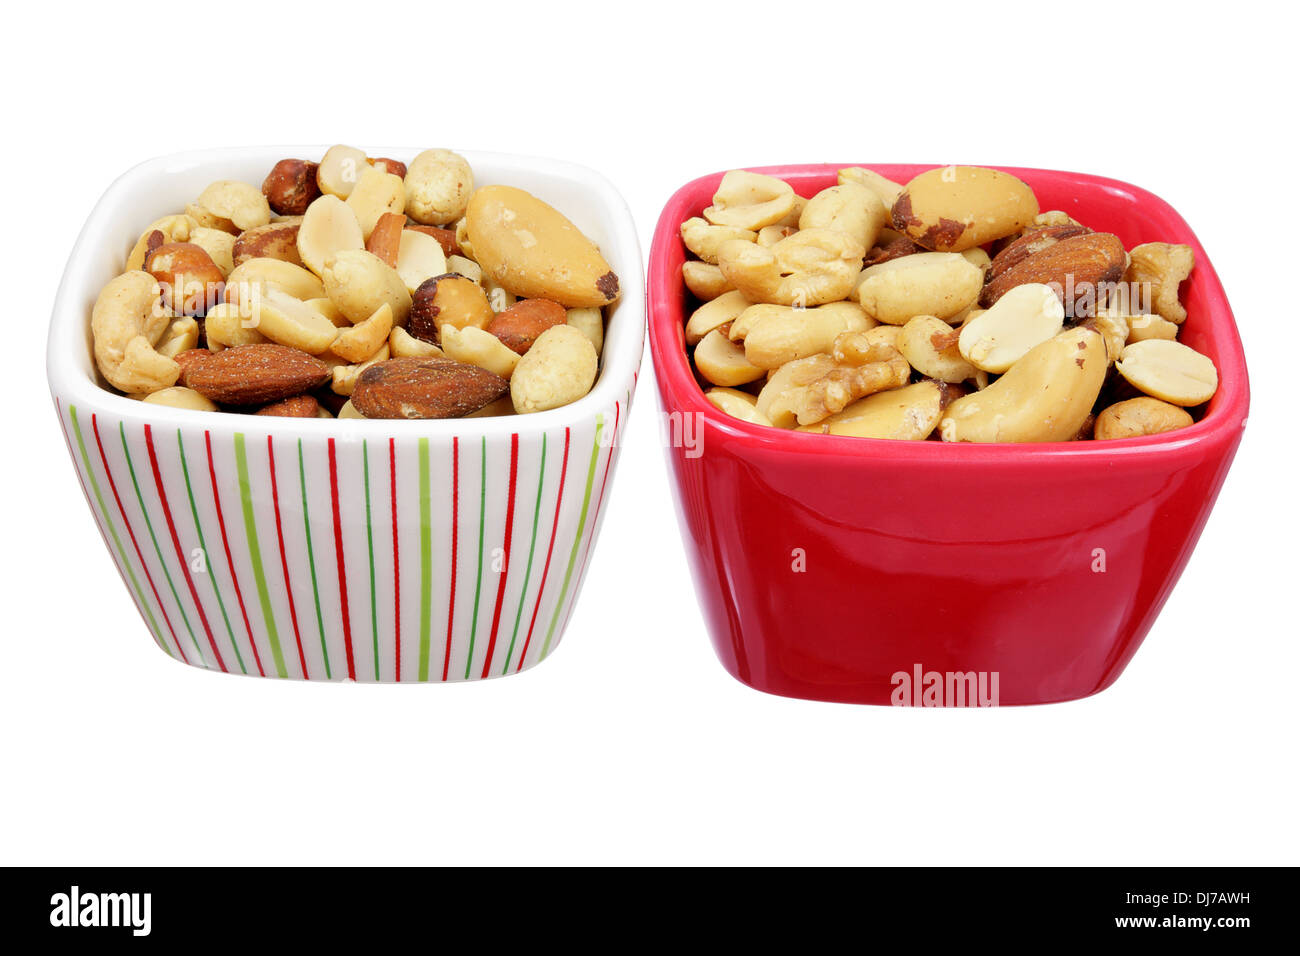 Two Bowl of Mixed Nuts - Stock Image